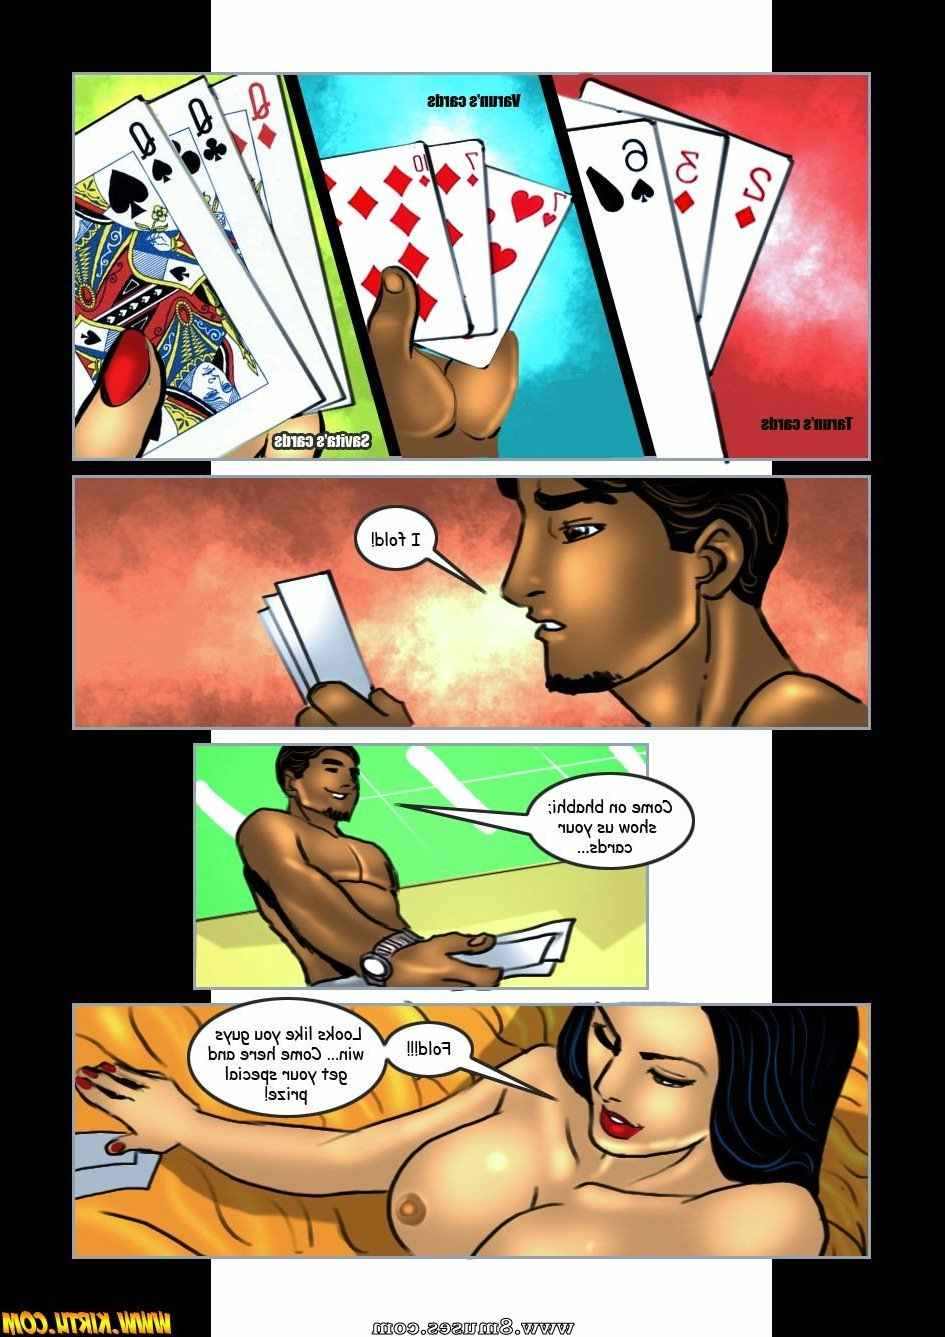 Kirtu_com-Comics/Savita-Bhabhi/Savita-Bhabhi-Episode-17-Double-Trouble-Part-2 Savita_Bhabhi_-_Episode_17__Double_Trouble_Part_2__8muses_-_Sex_and_Porn_Comics_25.jpg